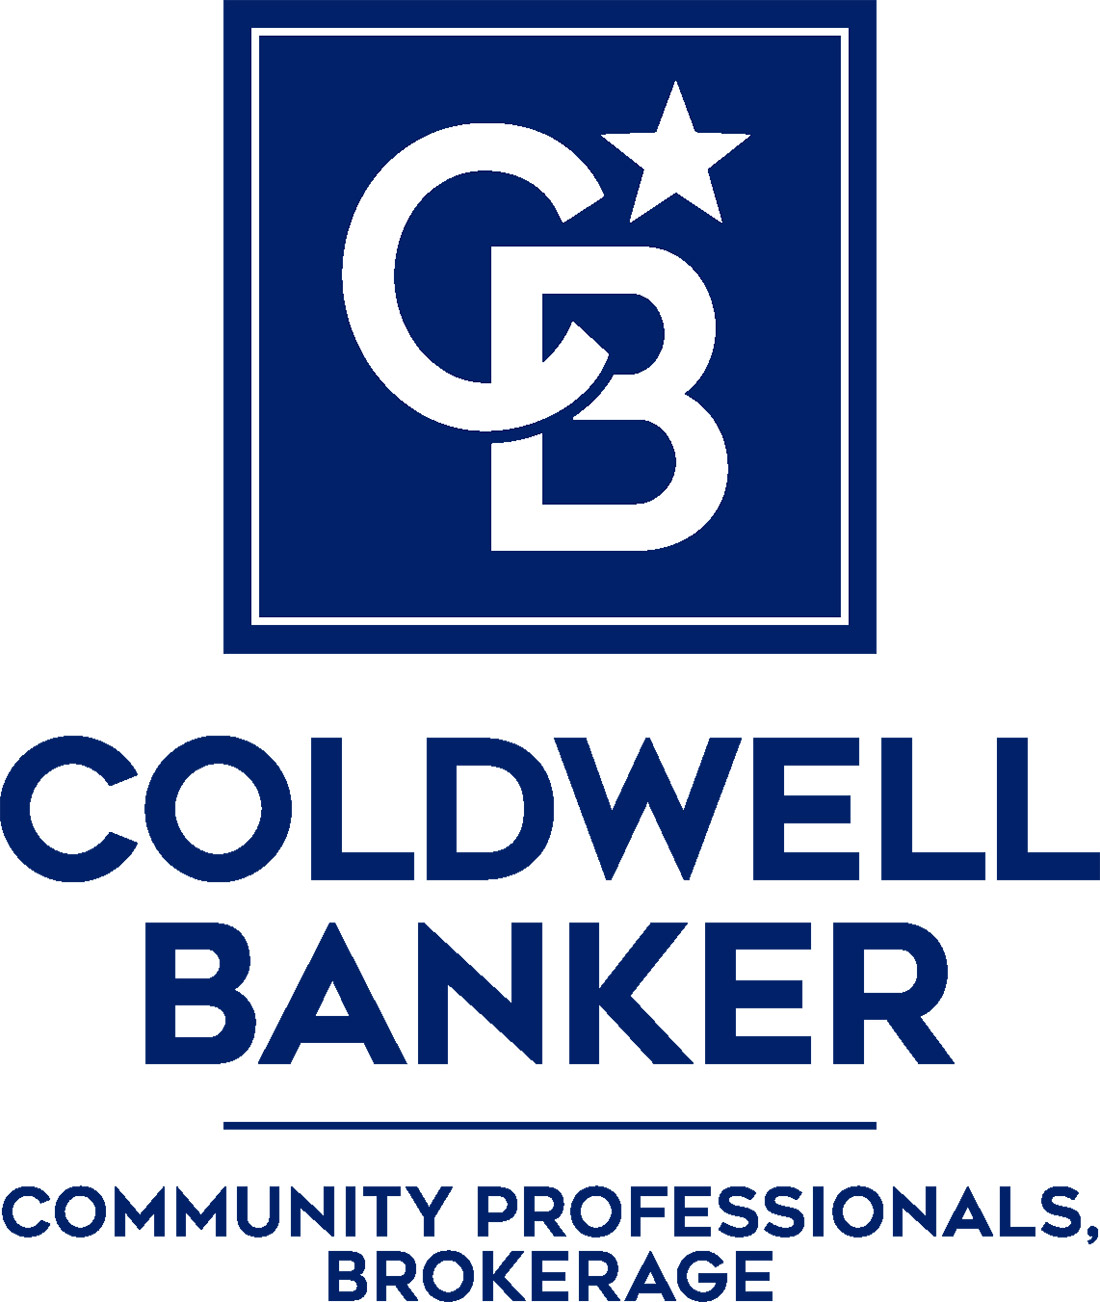 Justin Brown - Coldwell Banker Community Professionals Logo